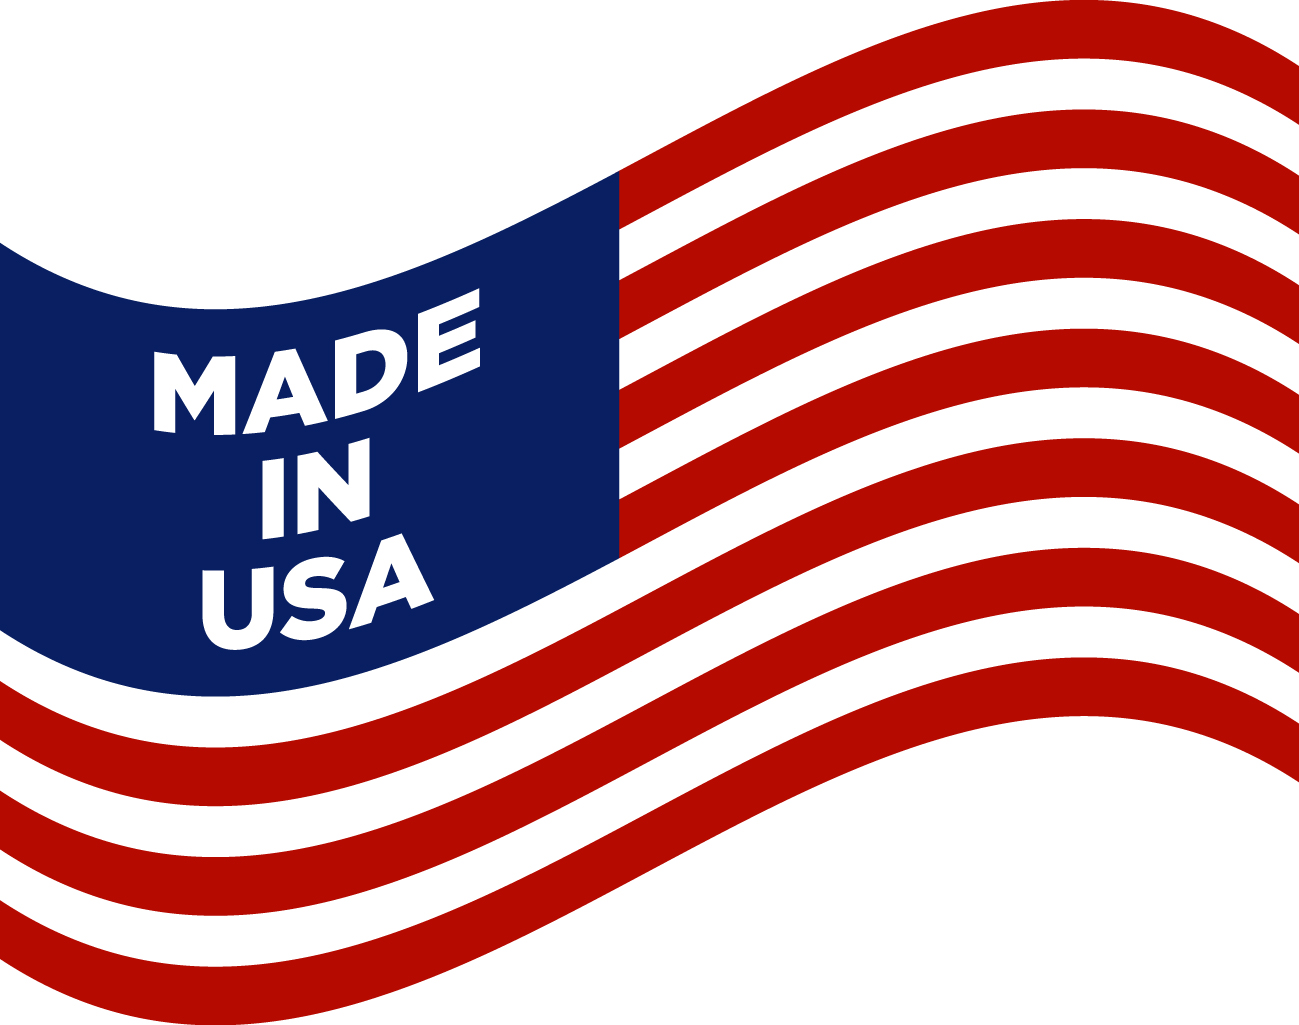 usa flag clipart at